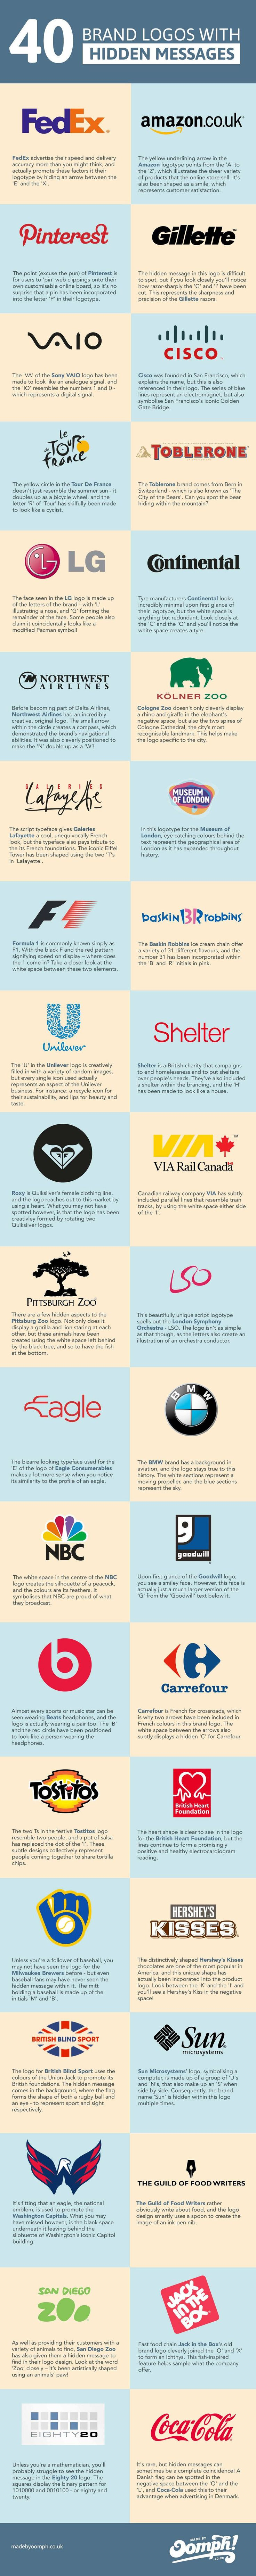 There's more to these logos than what meets the eye.